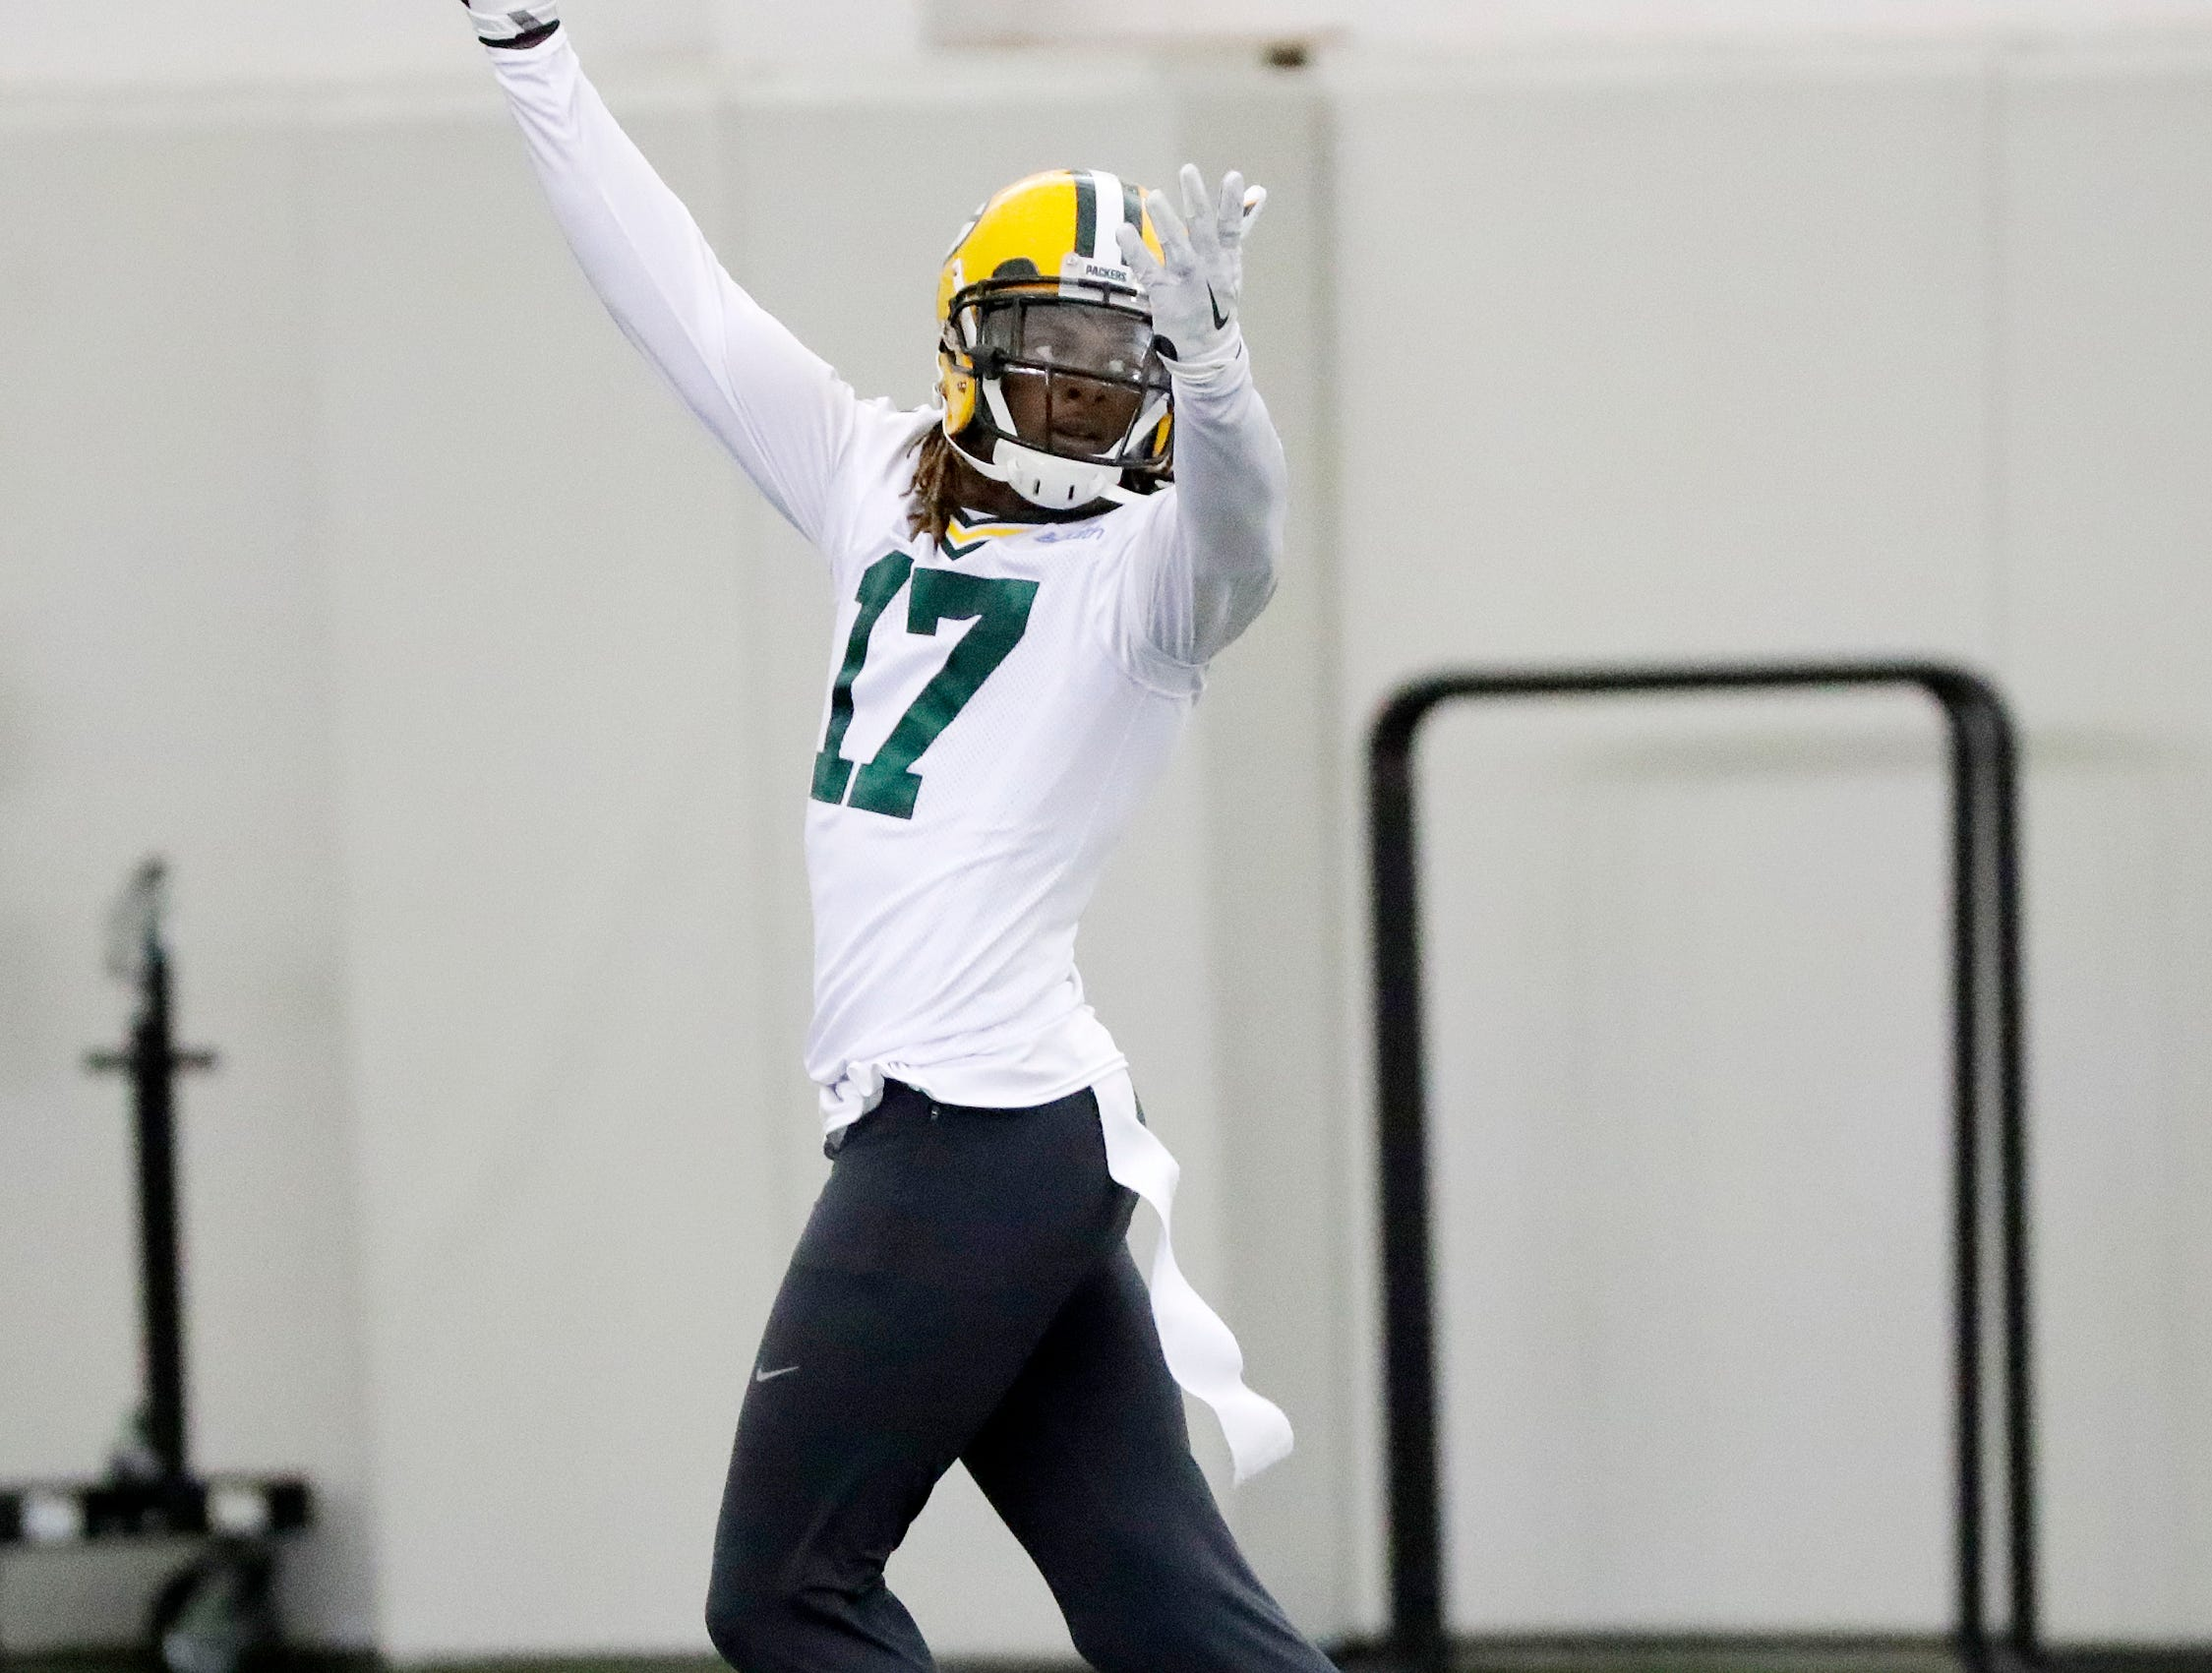 Green Bay Packers wide receiver Davante Adams (17) during a team practice at the Don Hutson Center on Wednesday, April 24, 2019 in Ashwaubenon, Wis.